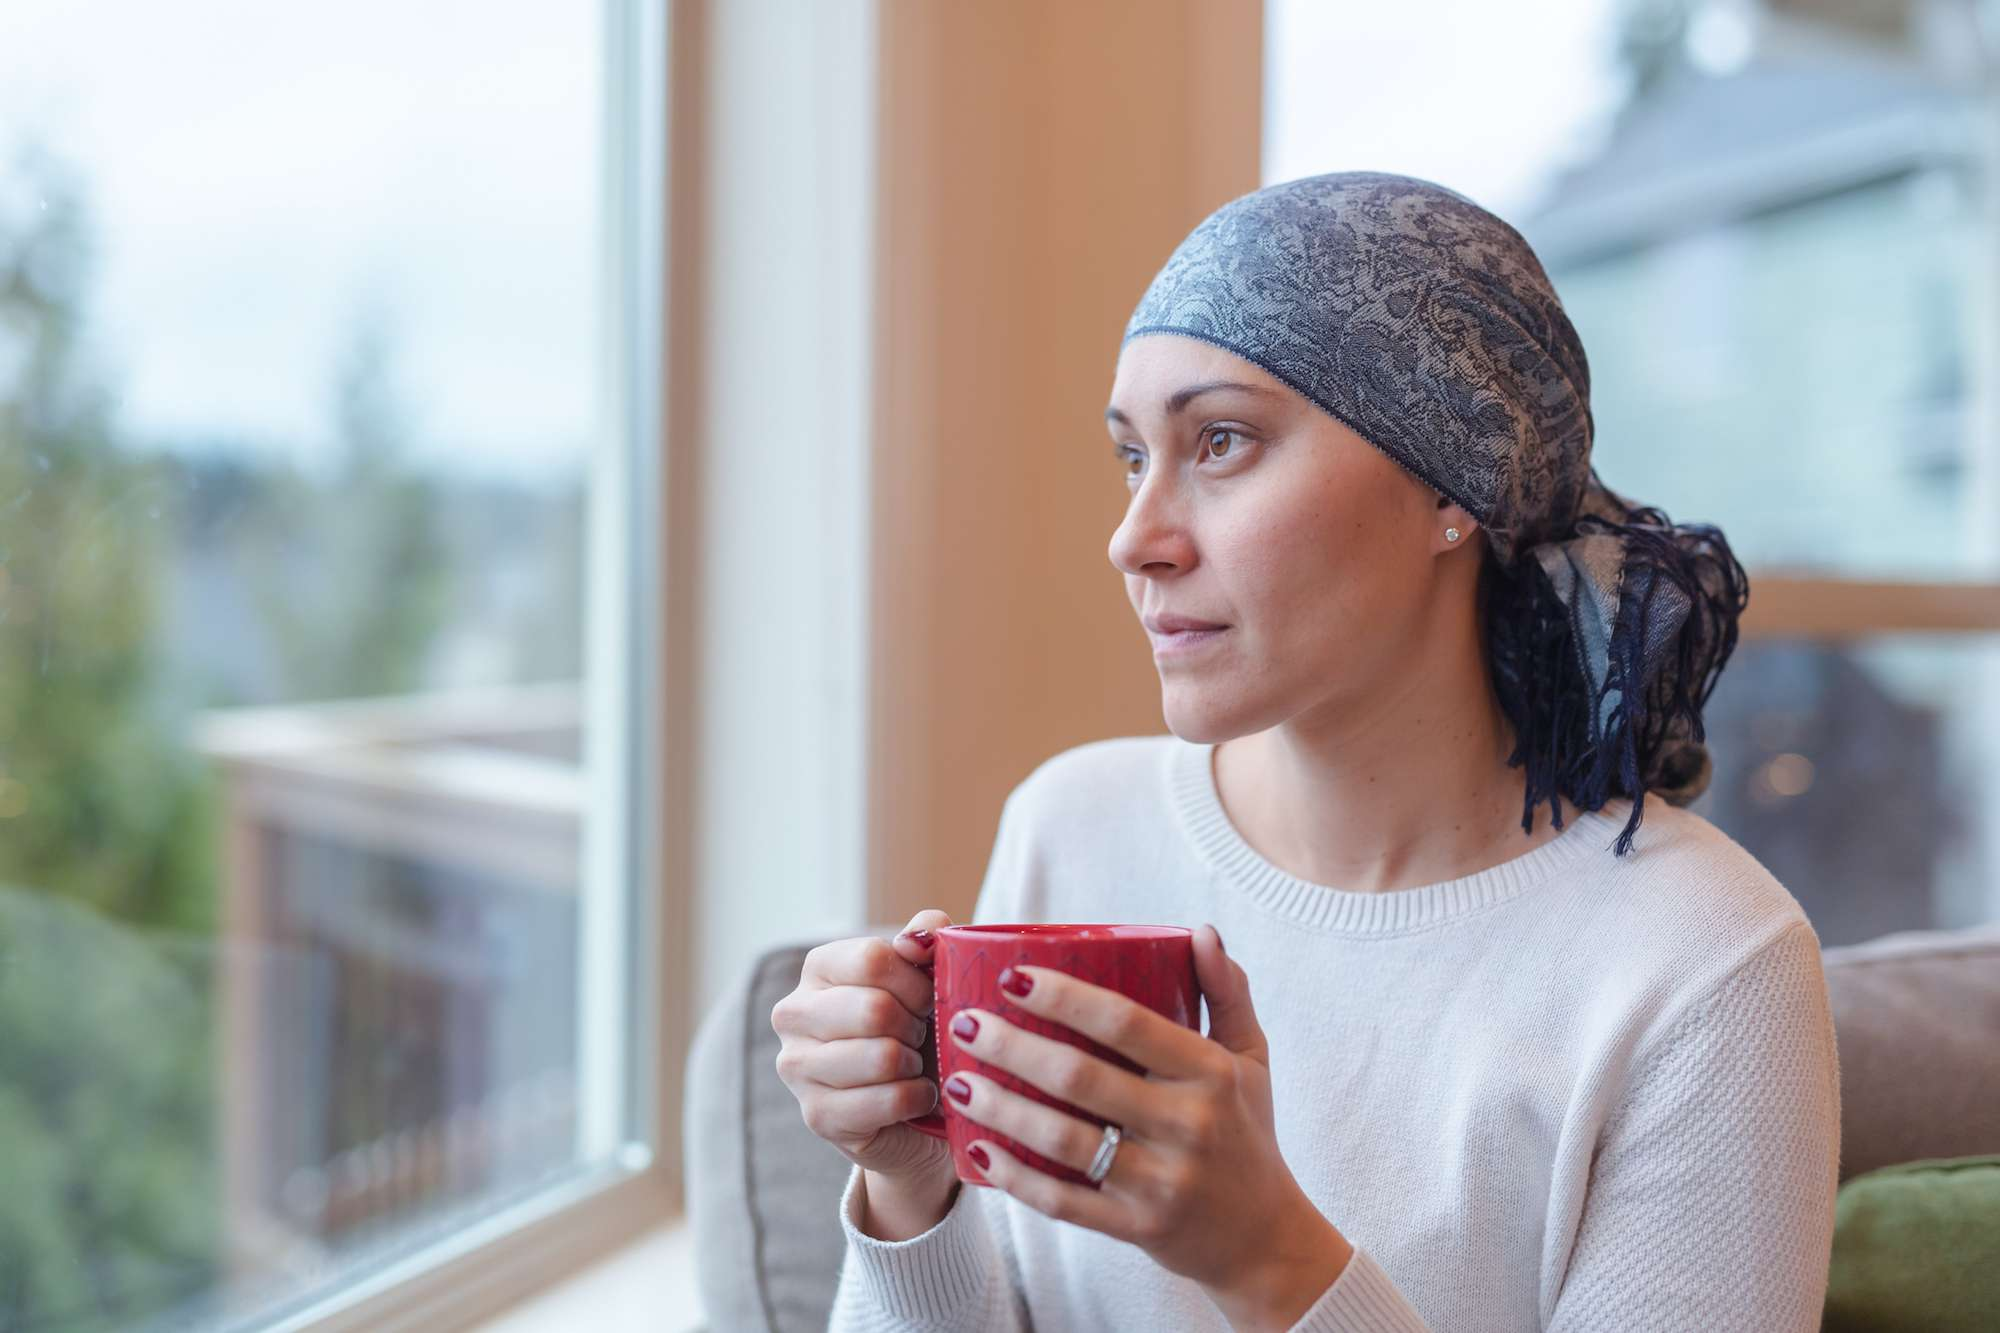 A woman with head scarf on looking out the window